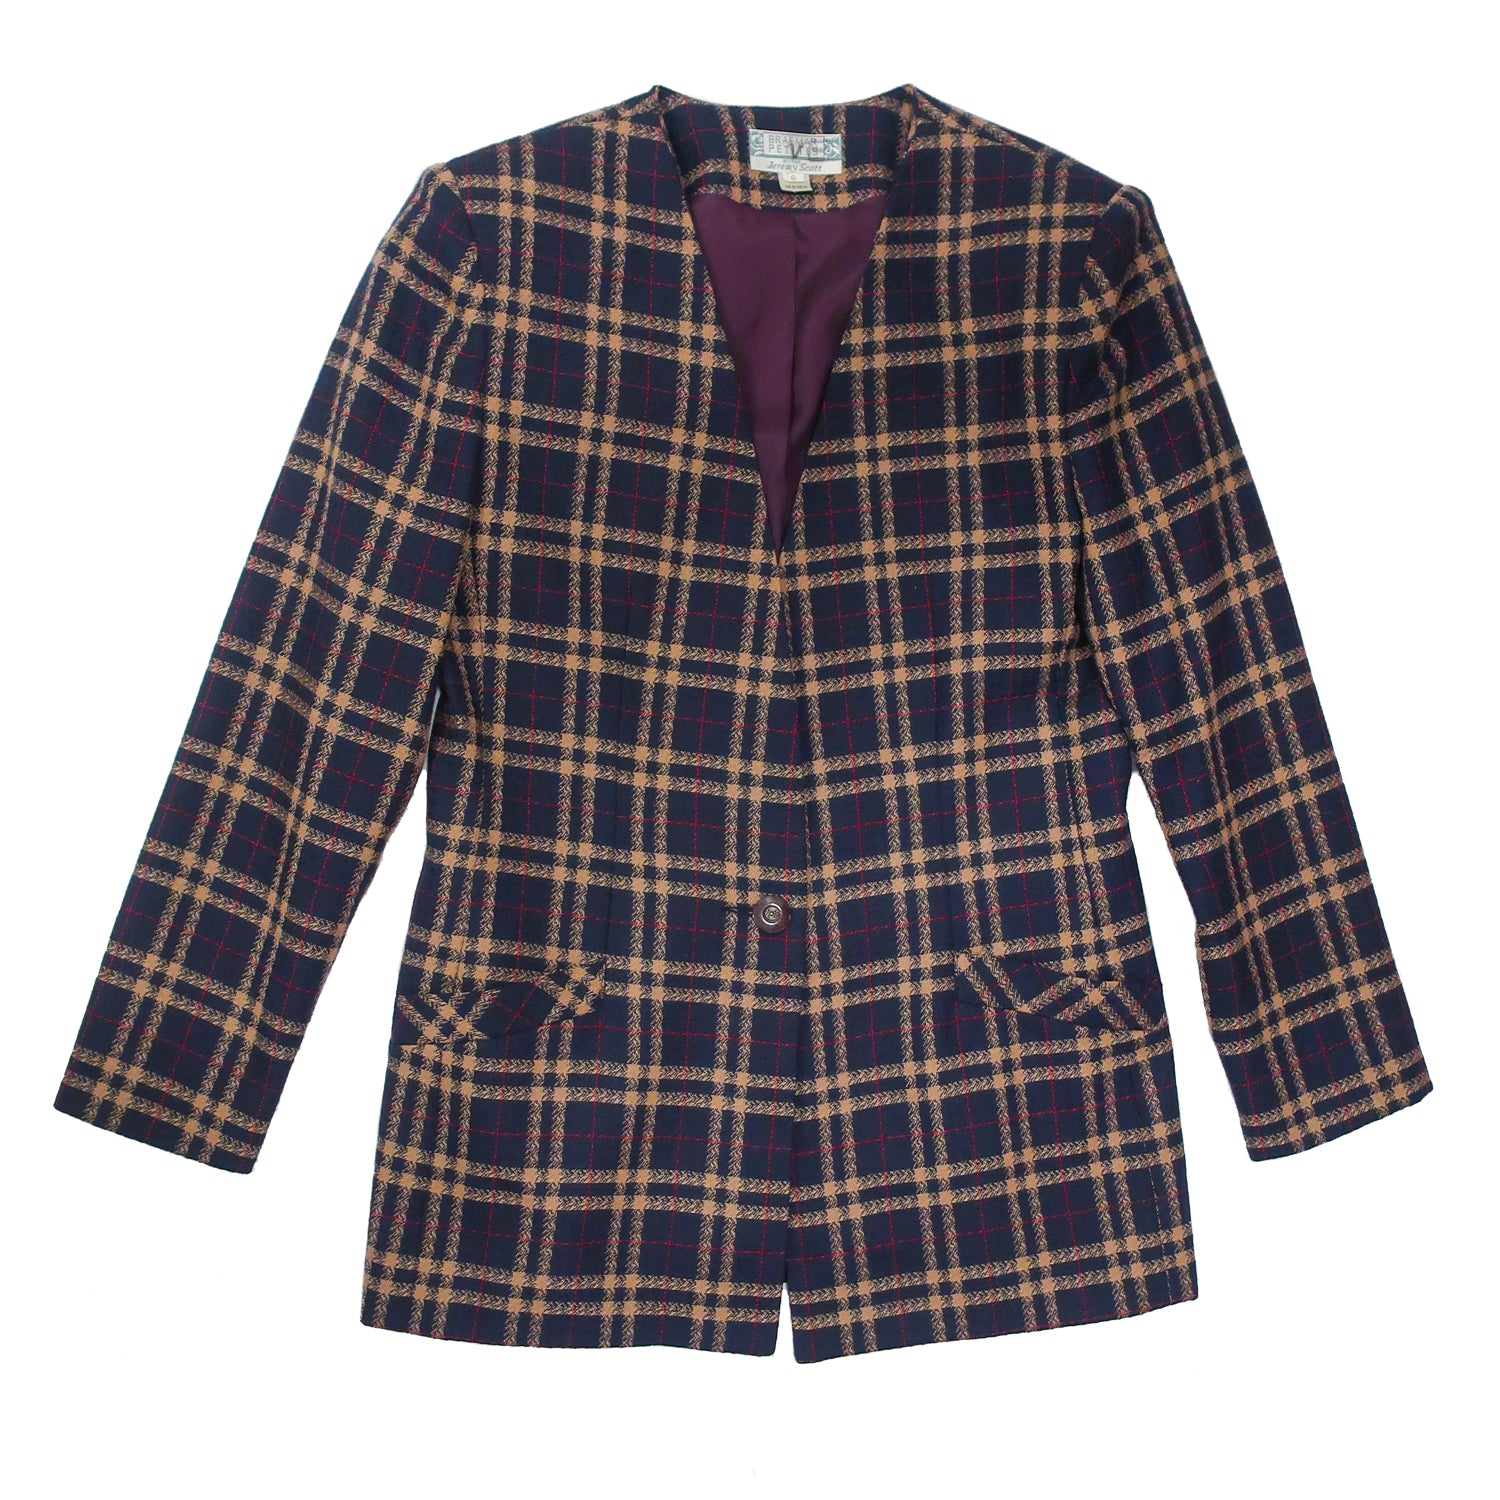 Second Room Vintage Clothing. Vintage navy blue, brown and burgundy wool blazer, with one button closure, and sewn in shoulder pads. This blazer is fully lined, with two front pockets, and looks amazing belted! Free North American shipping on all orders.